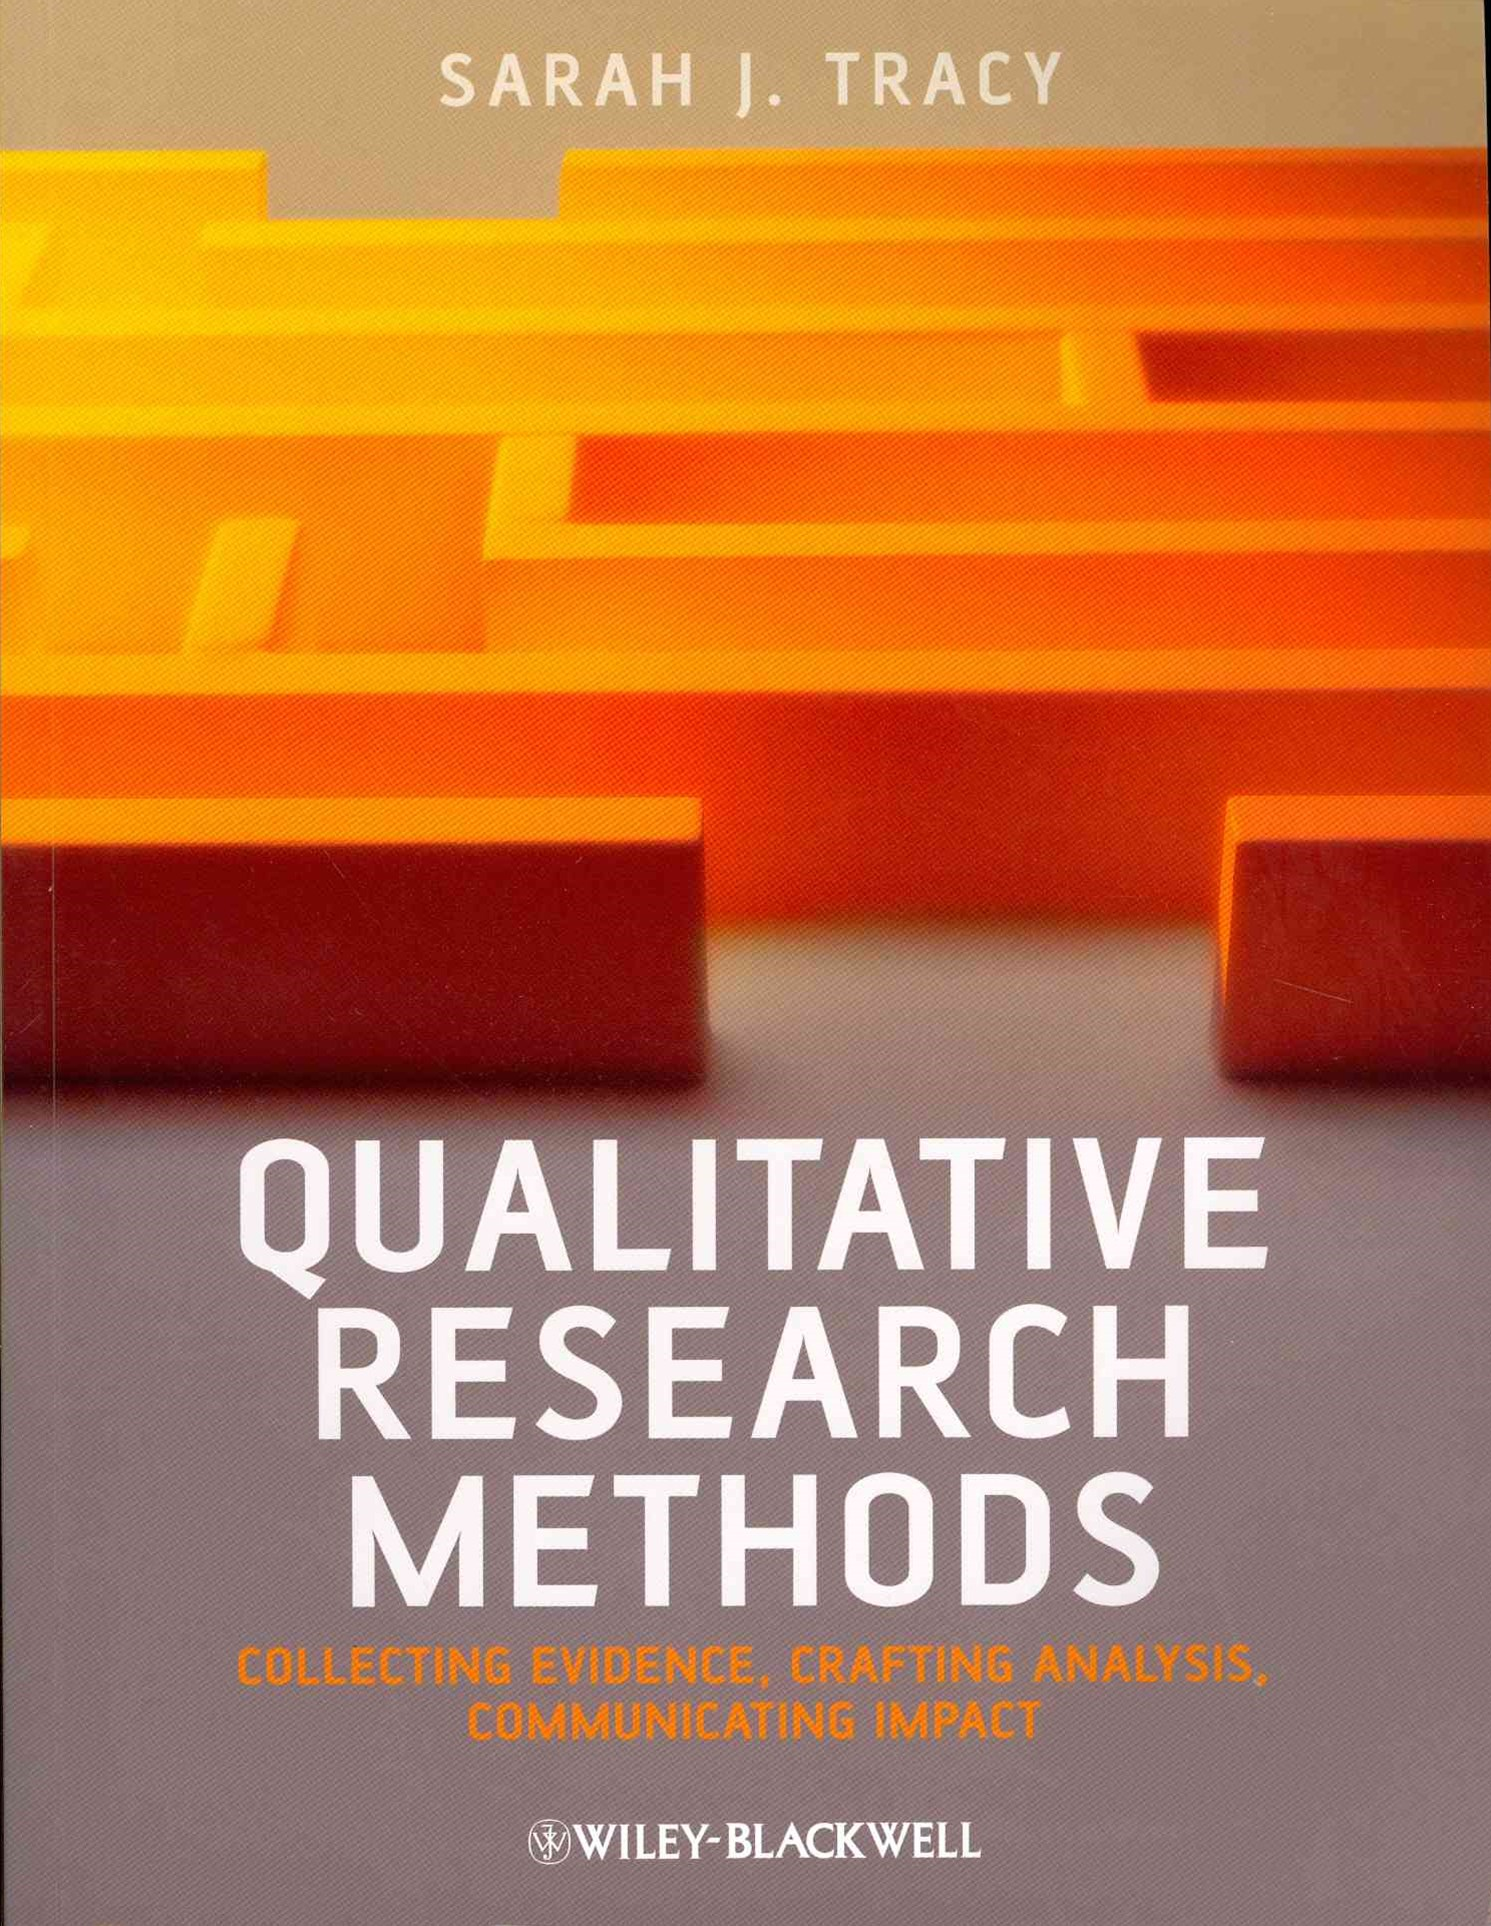 Qualitative Research Methods - Collecting Evidence, Crafting Analysis, Communicating Impact